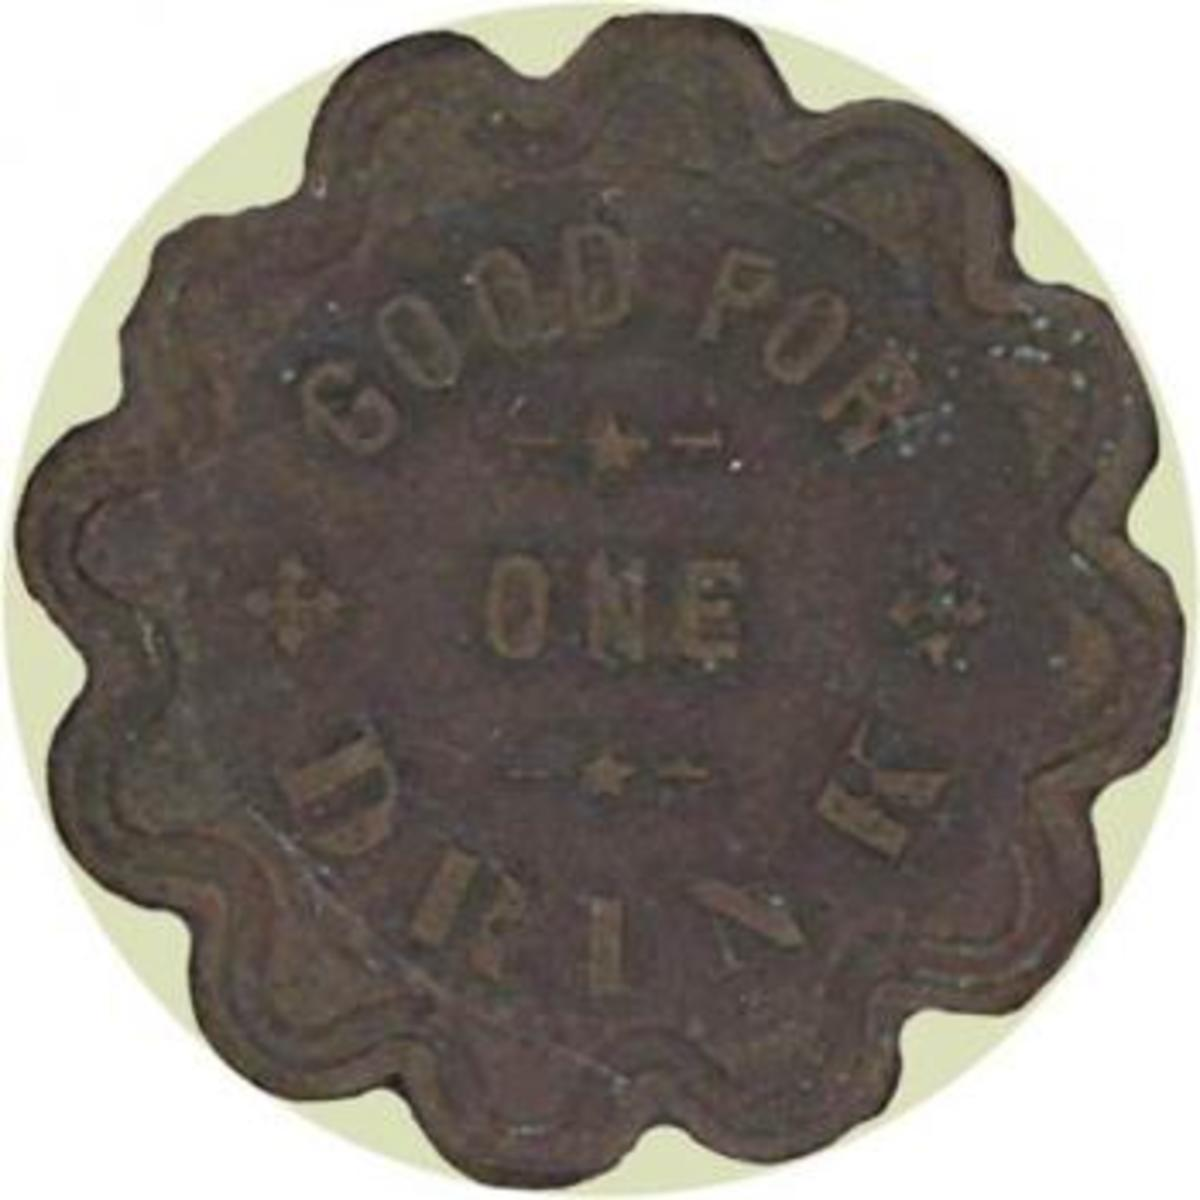 This token is also from a saloon in Congress, Arizona. Image copyright Holabird-Kagin Americana, used with permission.